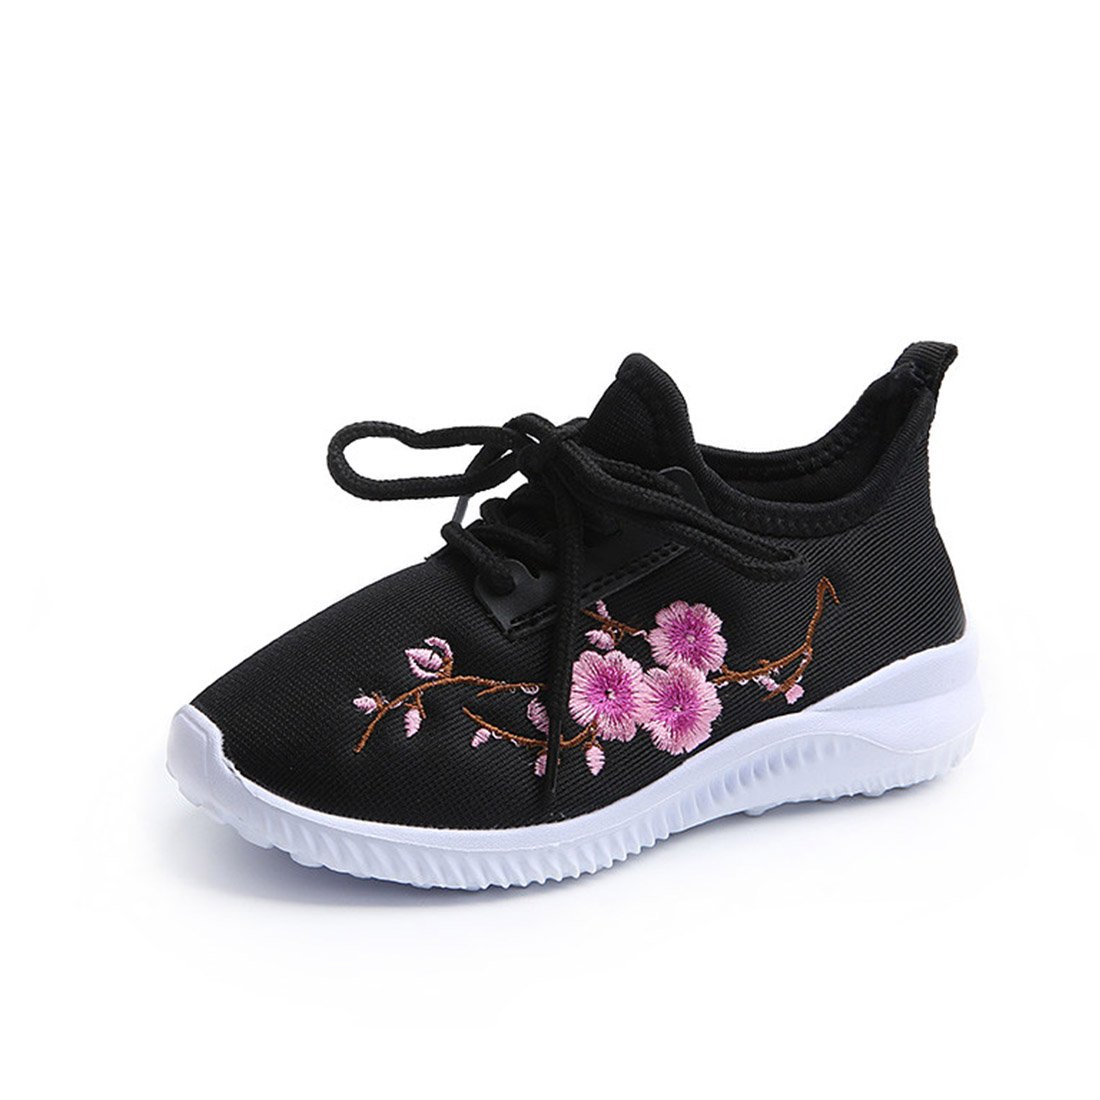 ON Toddler Baby Girls Sneakers Casual Flower Embroidery Breathable Walking Shoes